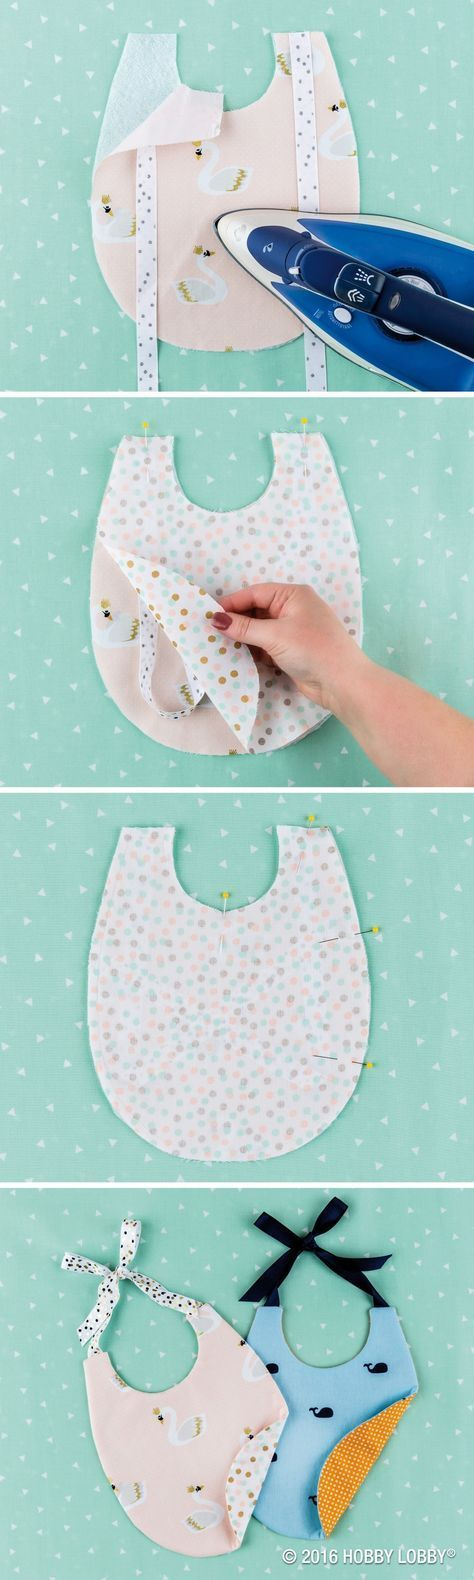 "Keep your little one in style with DIY bibs! 1) Cut 2 pieces of coordinating fabric & 1 piece of fusible fleece. 2) Sew 15"" of ribbon on each shoulder, & iron on fusible fleece to main fabric's wrong side, & align the main & second fabrics' right sides. 4) Sew 1/4"" from edge all the way around bib, leaving a 1 1/2"" opening. 4) Trim corners & make small cuts around bib. Do not clip the sew line. 5) Turn bib inside out, press & hand sew the open space to finish"